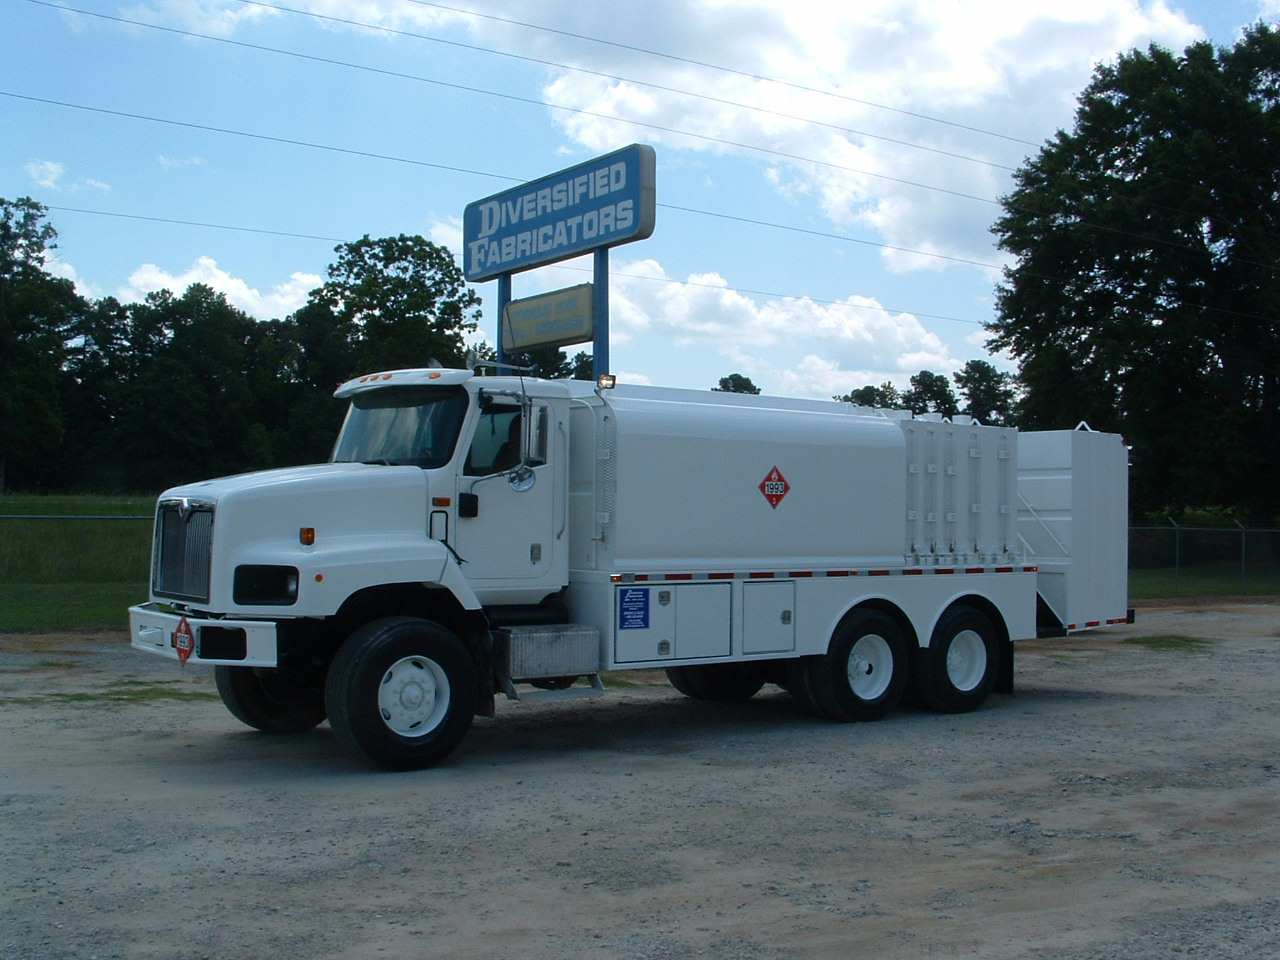 Mobile fuel and lube service water truck under